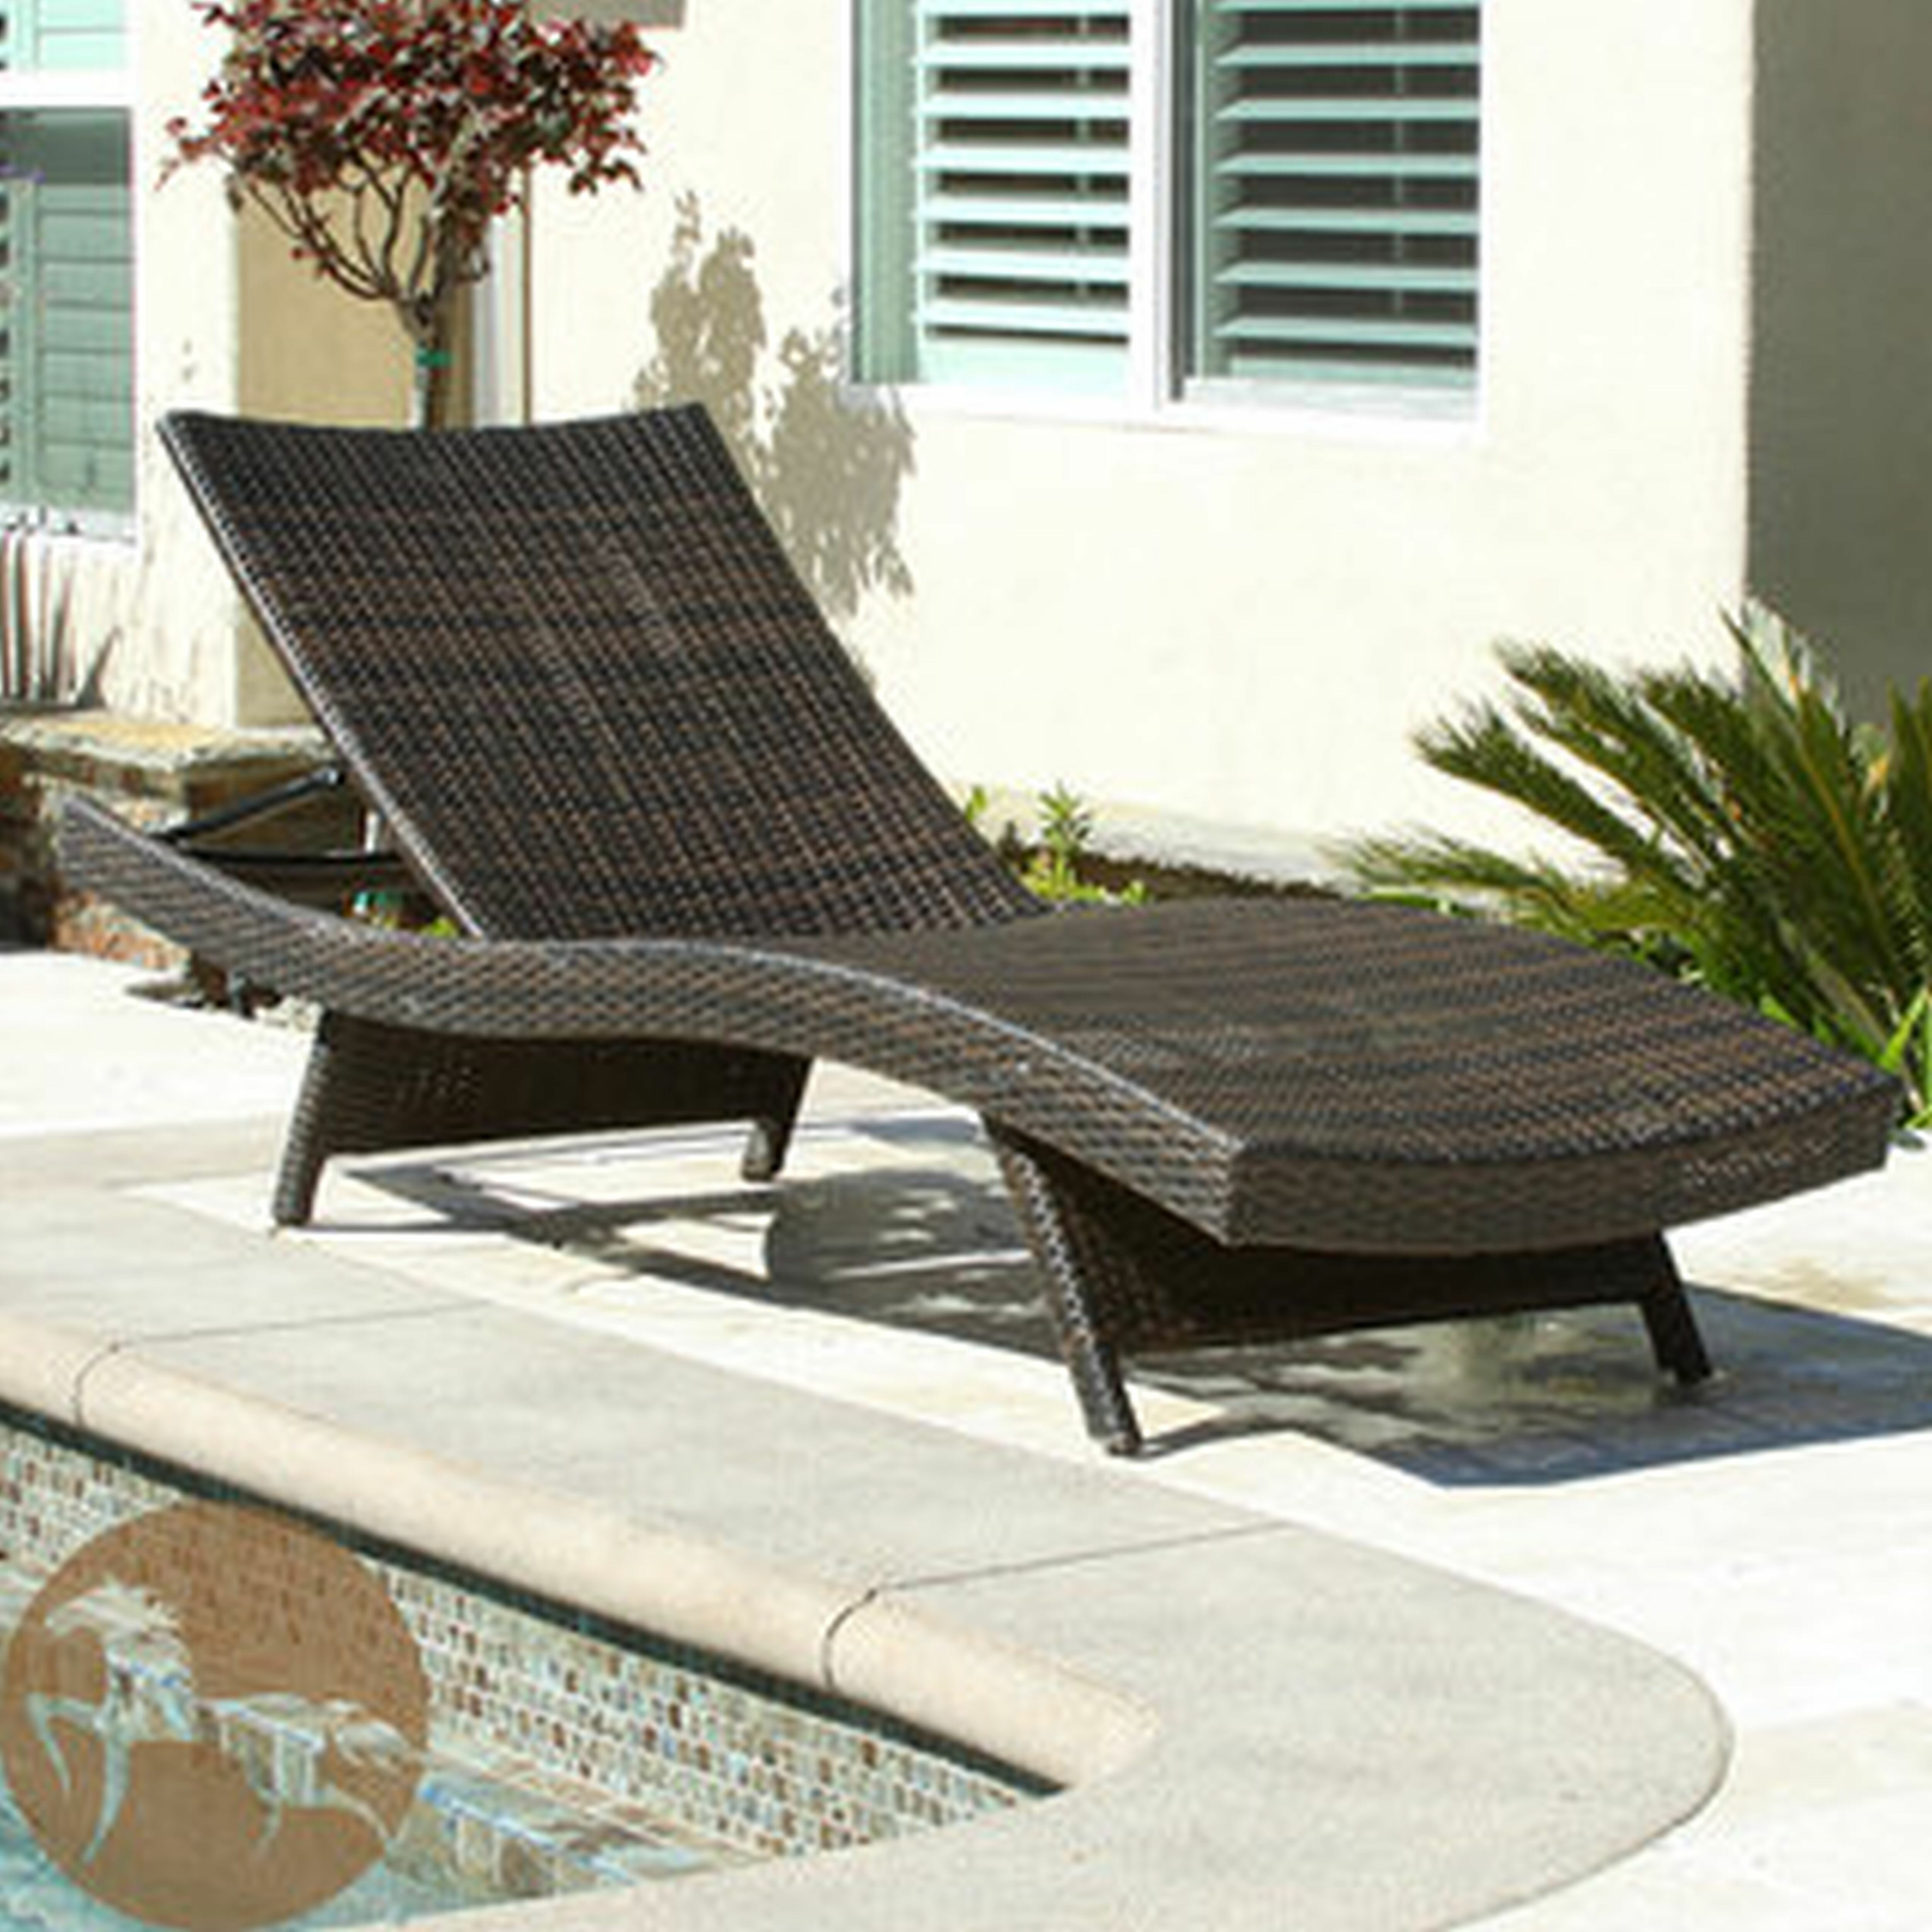 Patio Sets at Lowes | Lowes Lounge Chairs | Porch Rocking Chairs Lowes